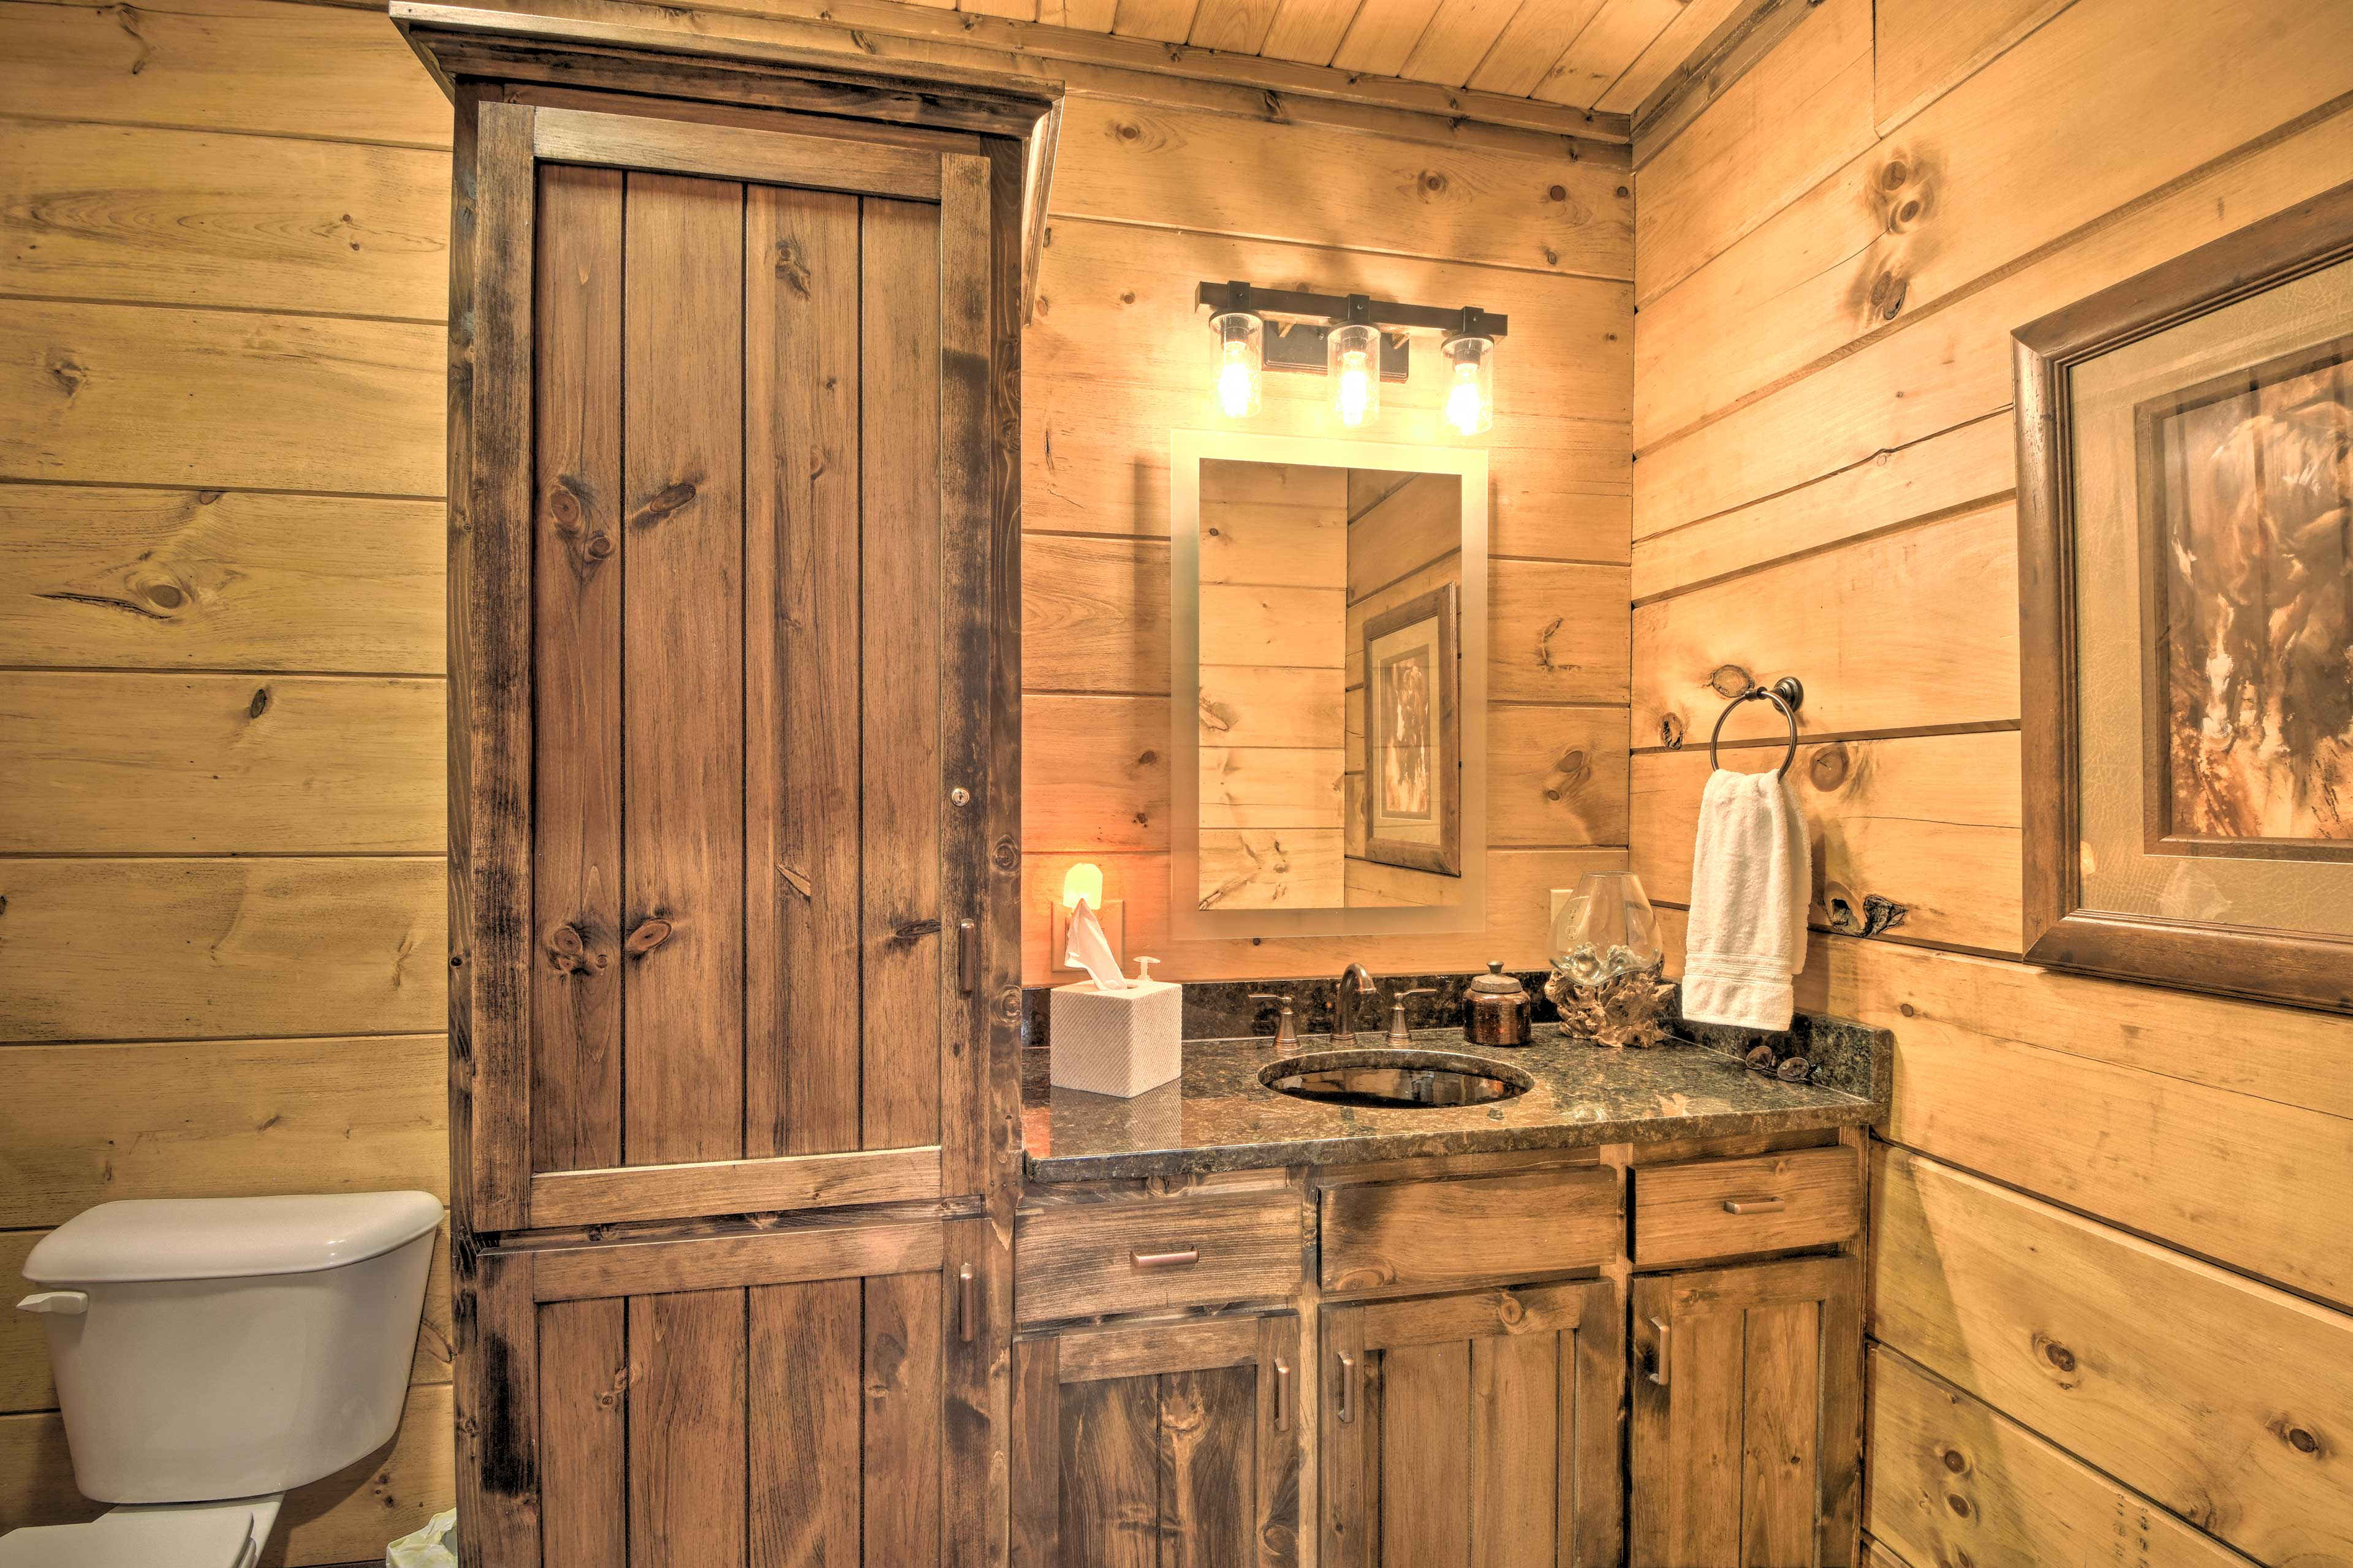 Get ready for the day at this bathroom vanity.